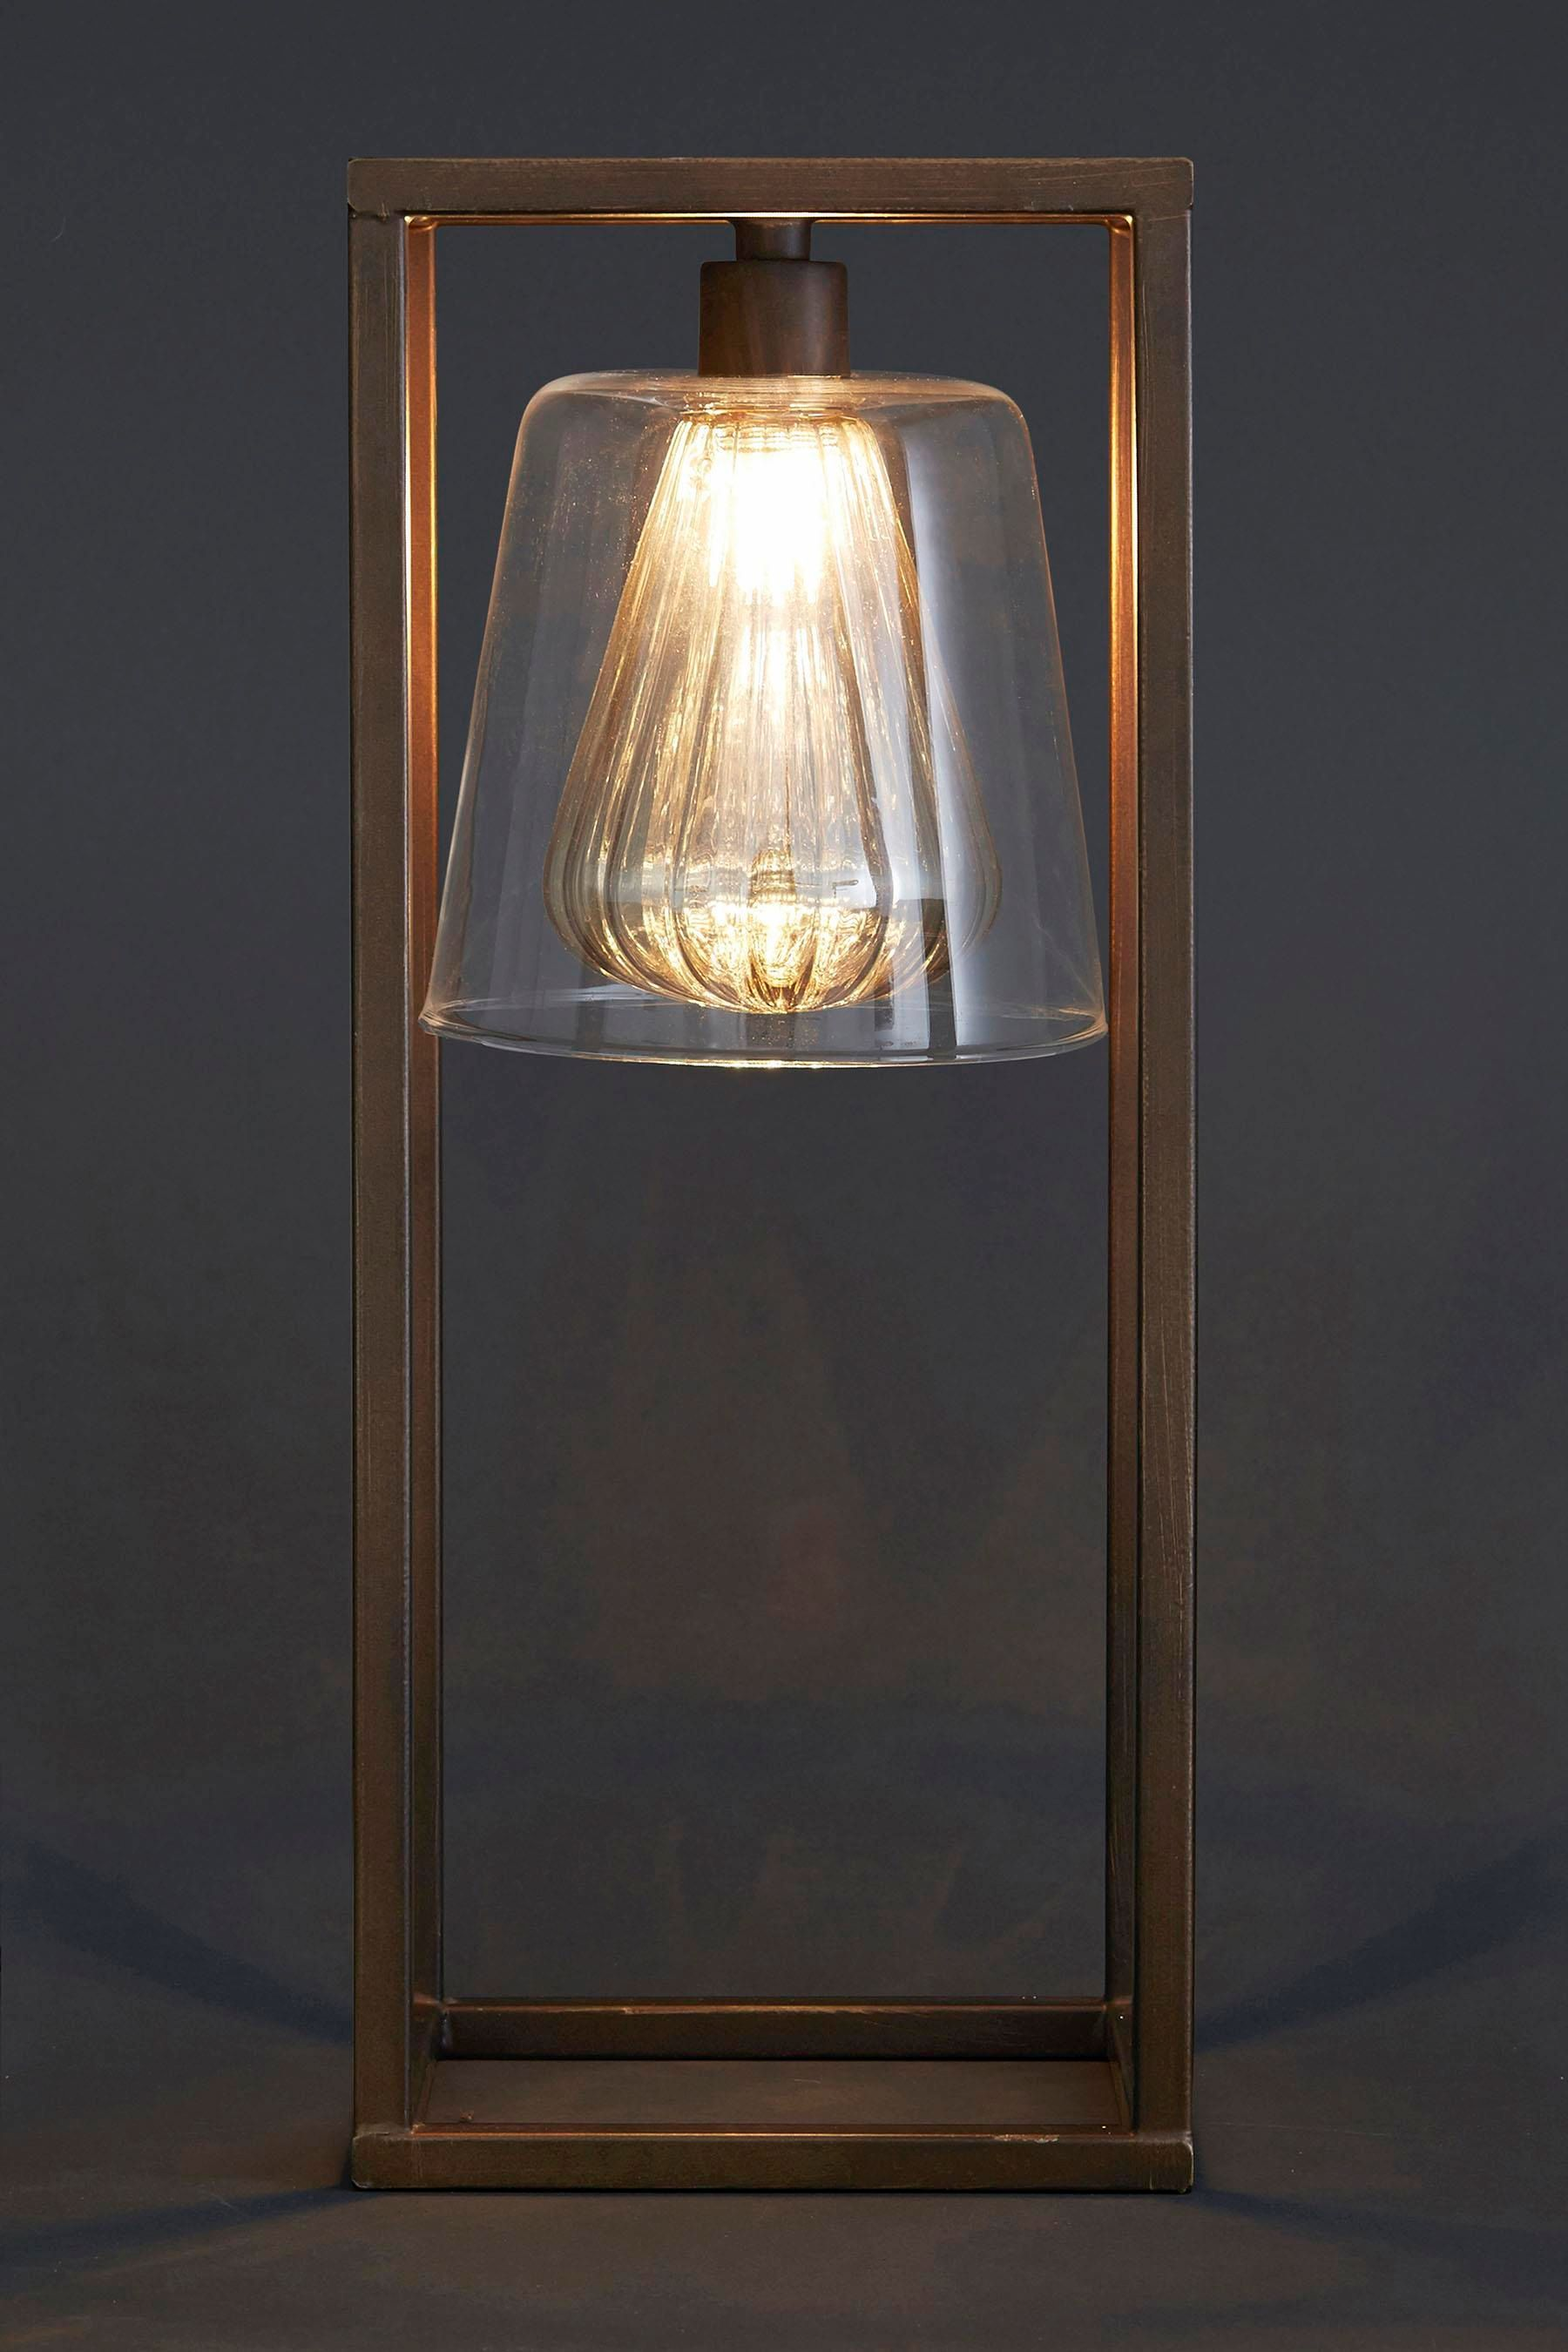 Buy Islington Table Lamp With Double Glass Shade from the